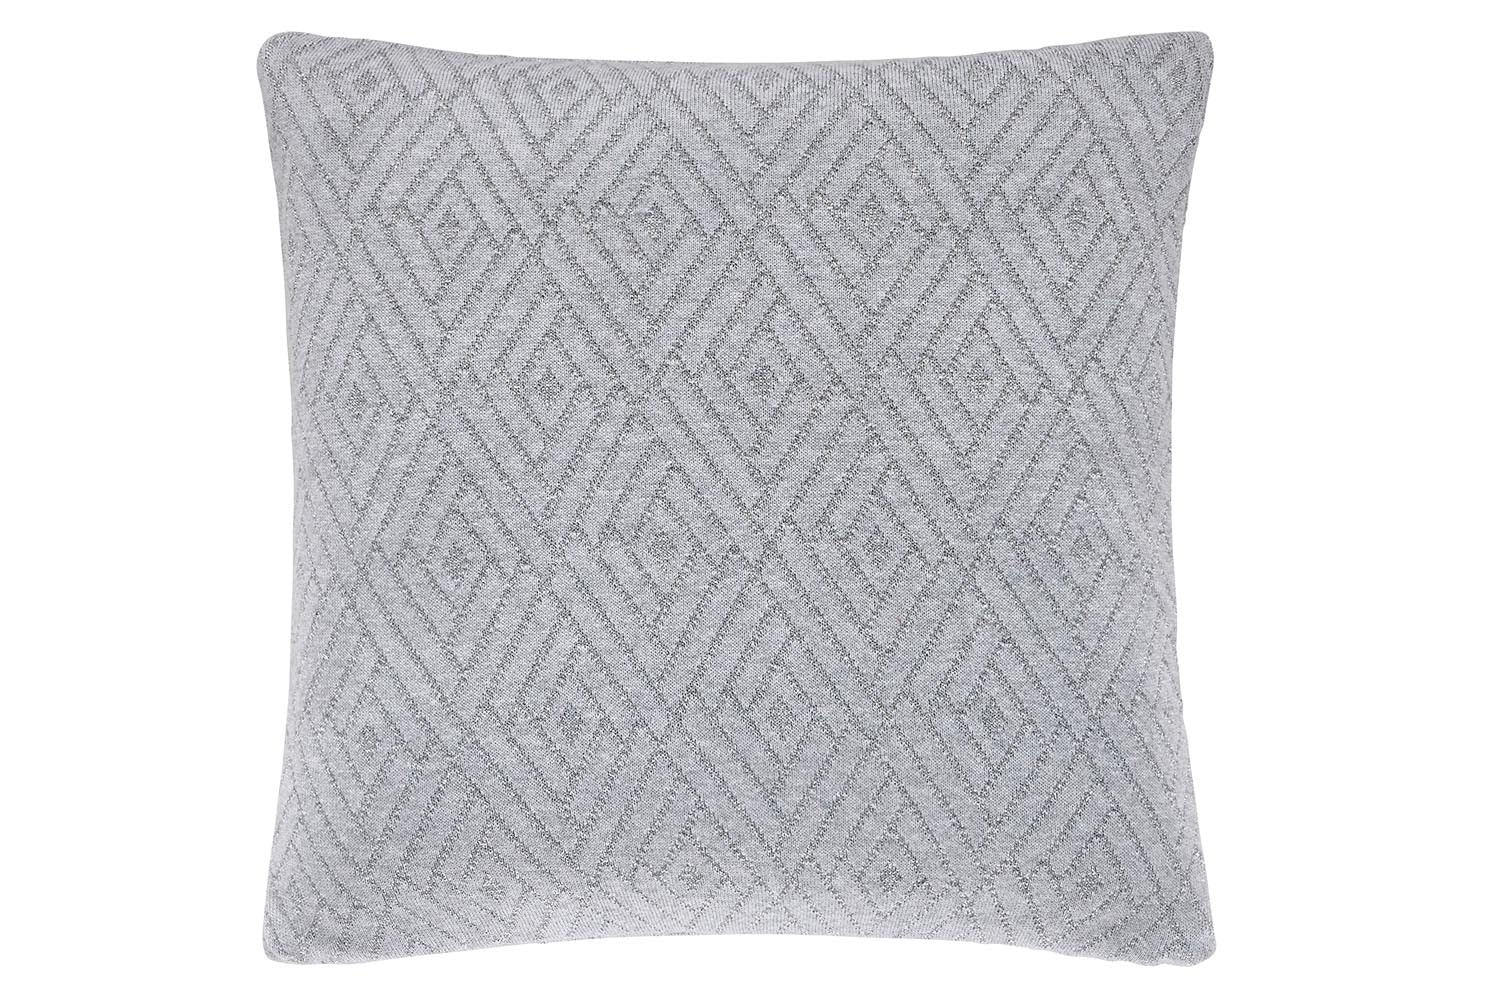 Pimlico Platinum Cushion | 40x40cm